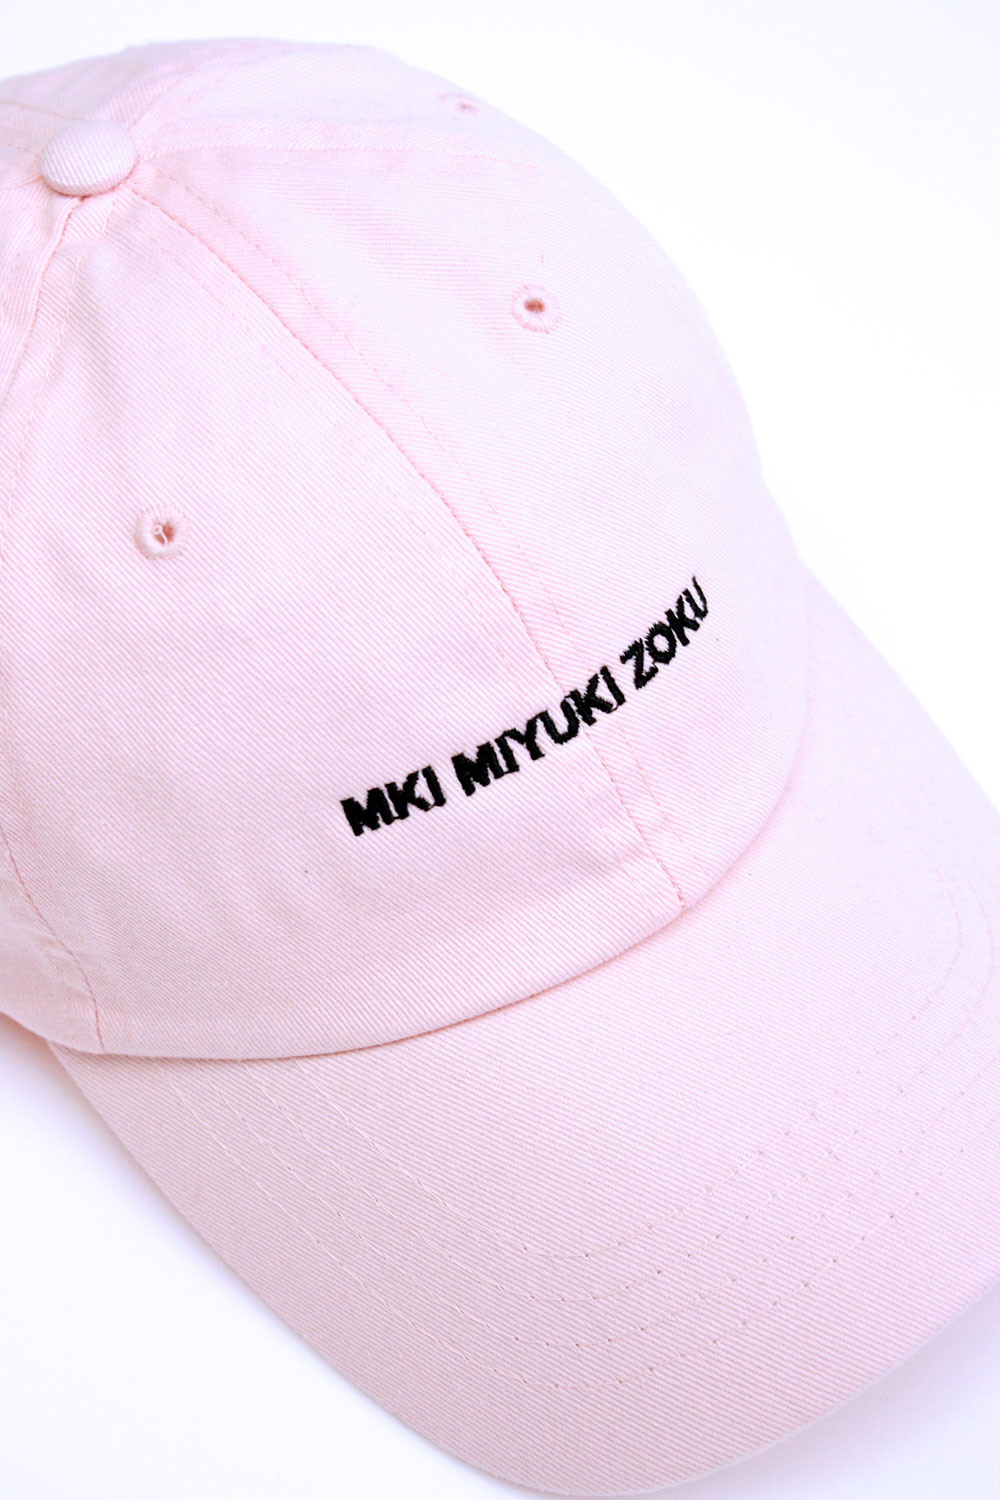 627567b4491a7 mki twill ball cap pastel pink. SOLD OUT